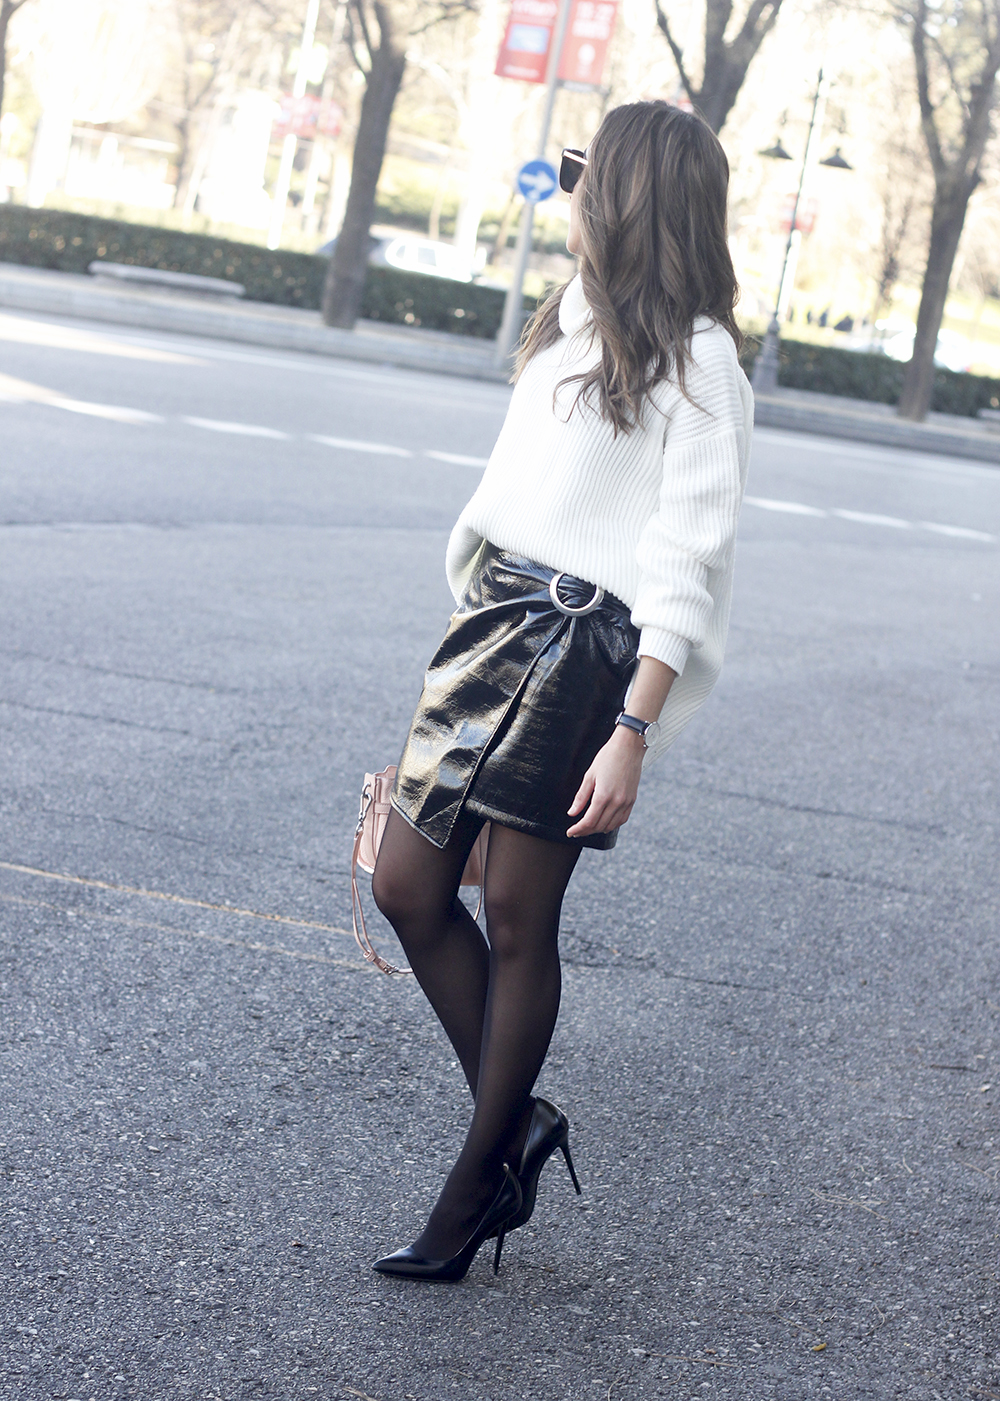 Black Patent leather skirt white sweater coach bag heels outfit style fashion winter07